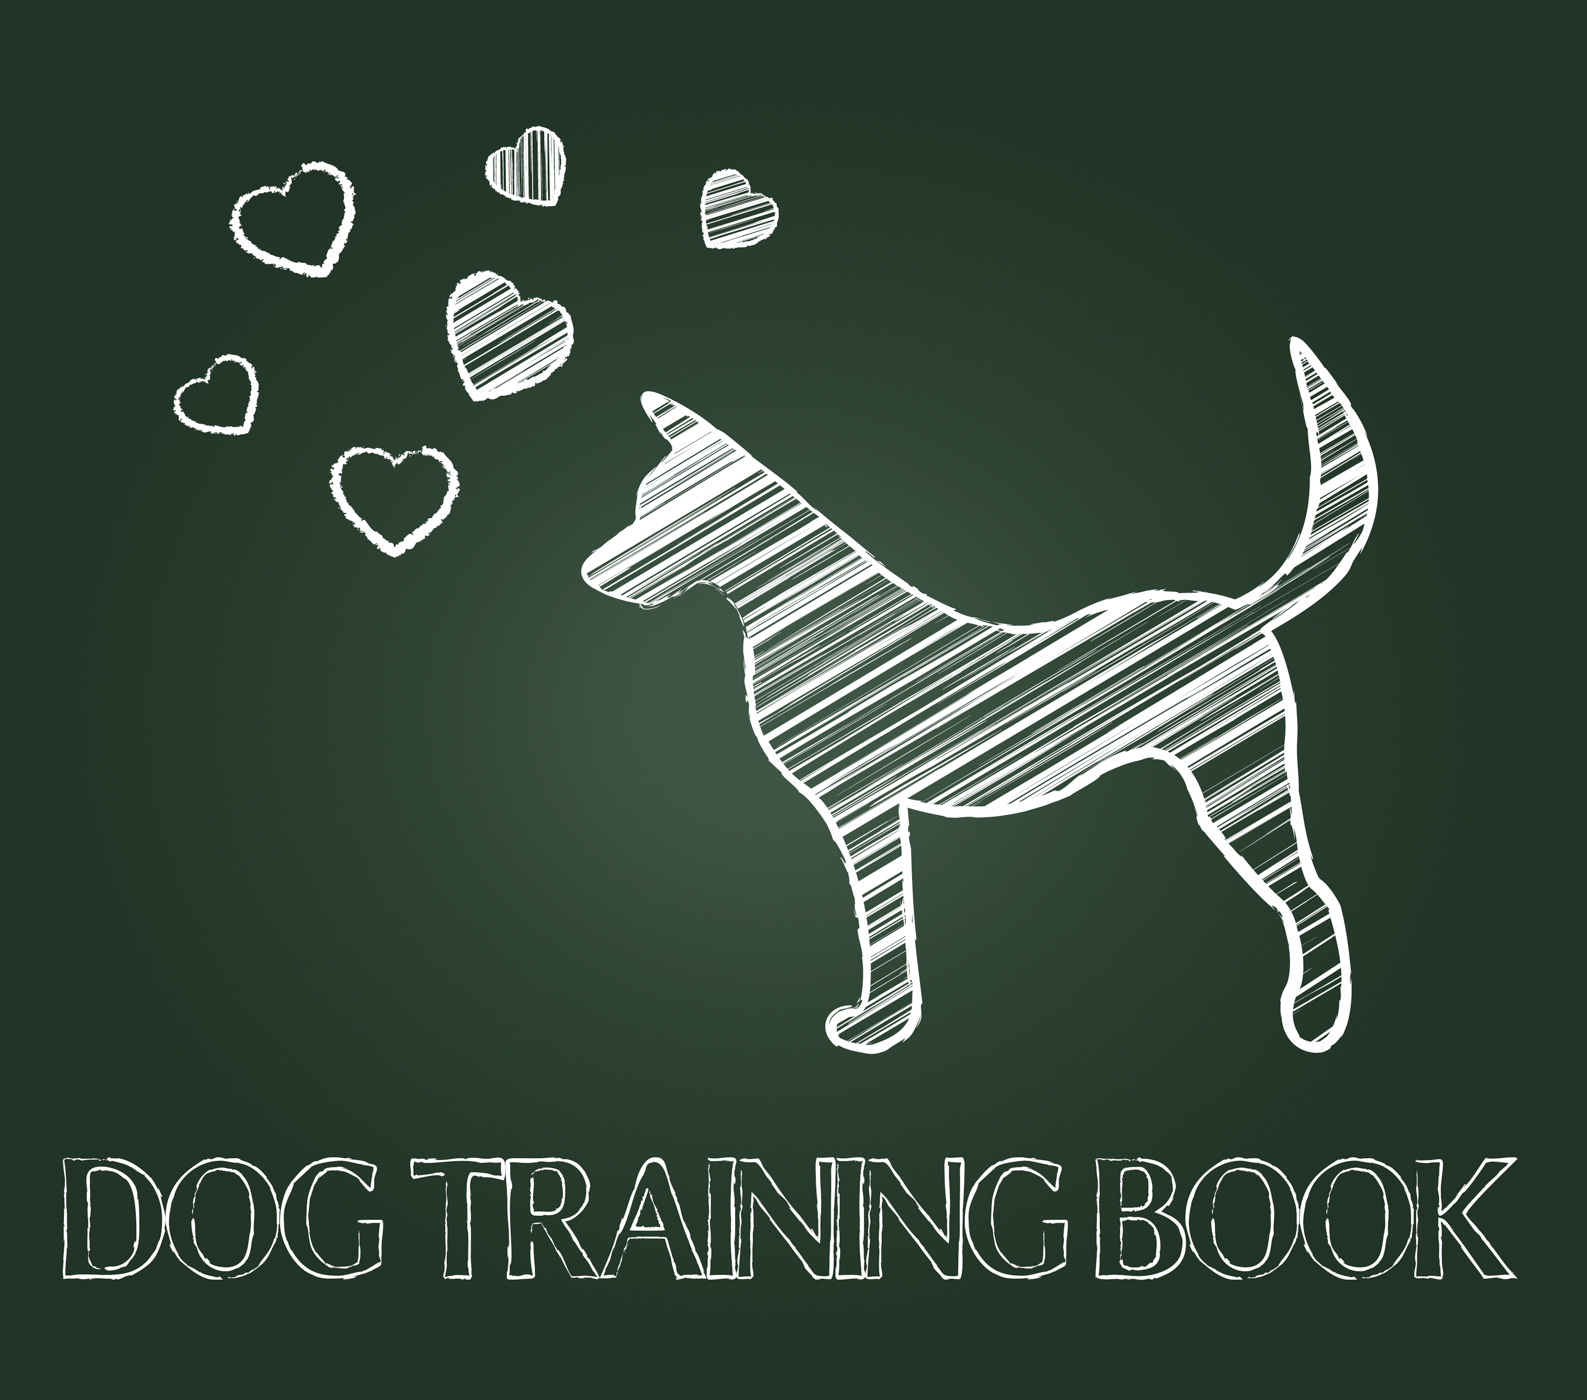 Dog Training Book Shows Teaching Skills And Education, Book, Skills, Pup, Puppies, HQ Photo